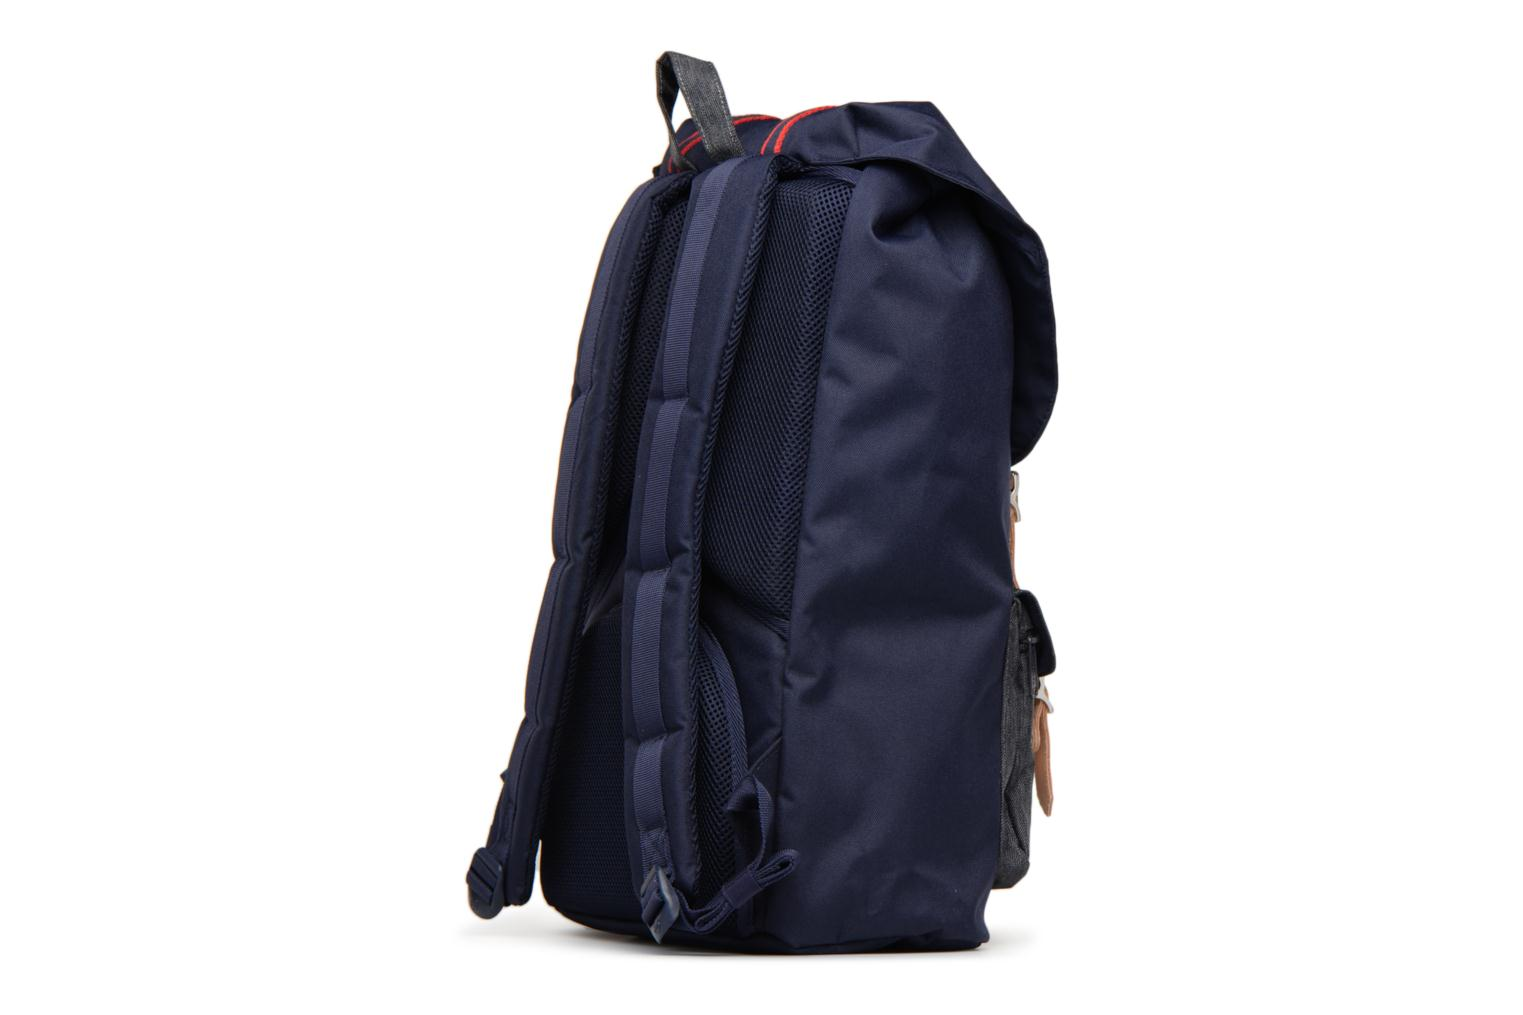 Offset Herschel America Dark Little Denim Peacot qr8wEzxWr